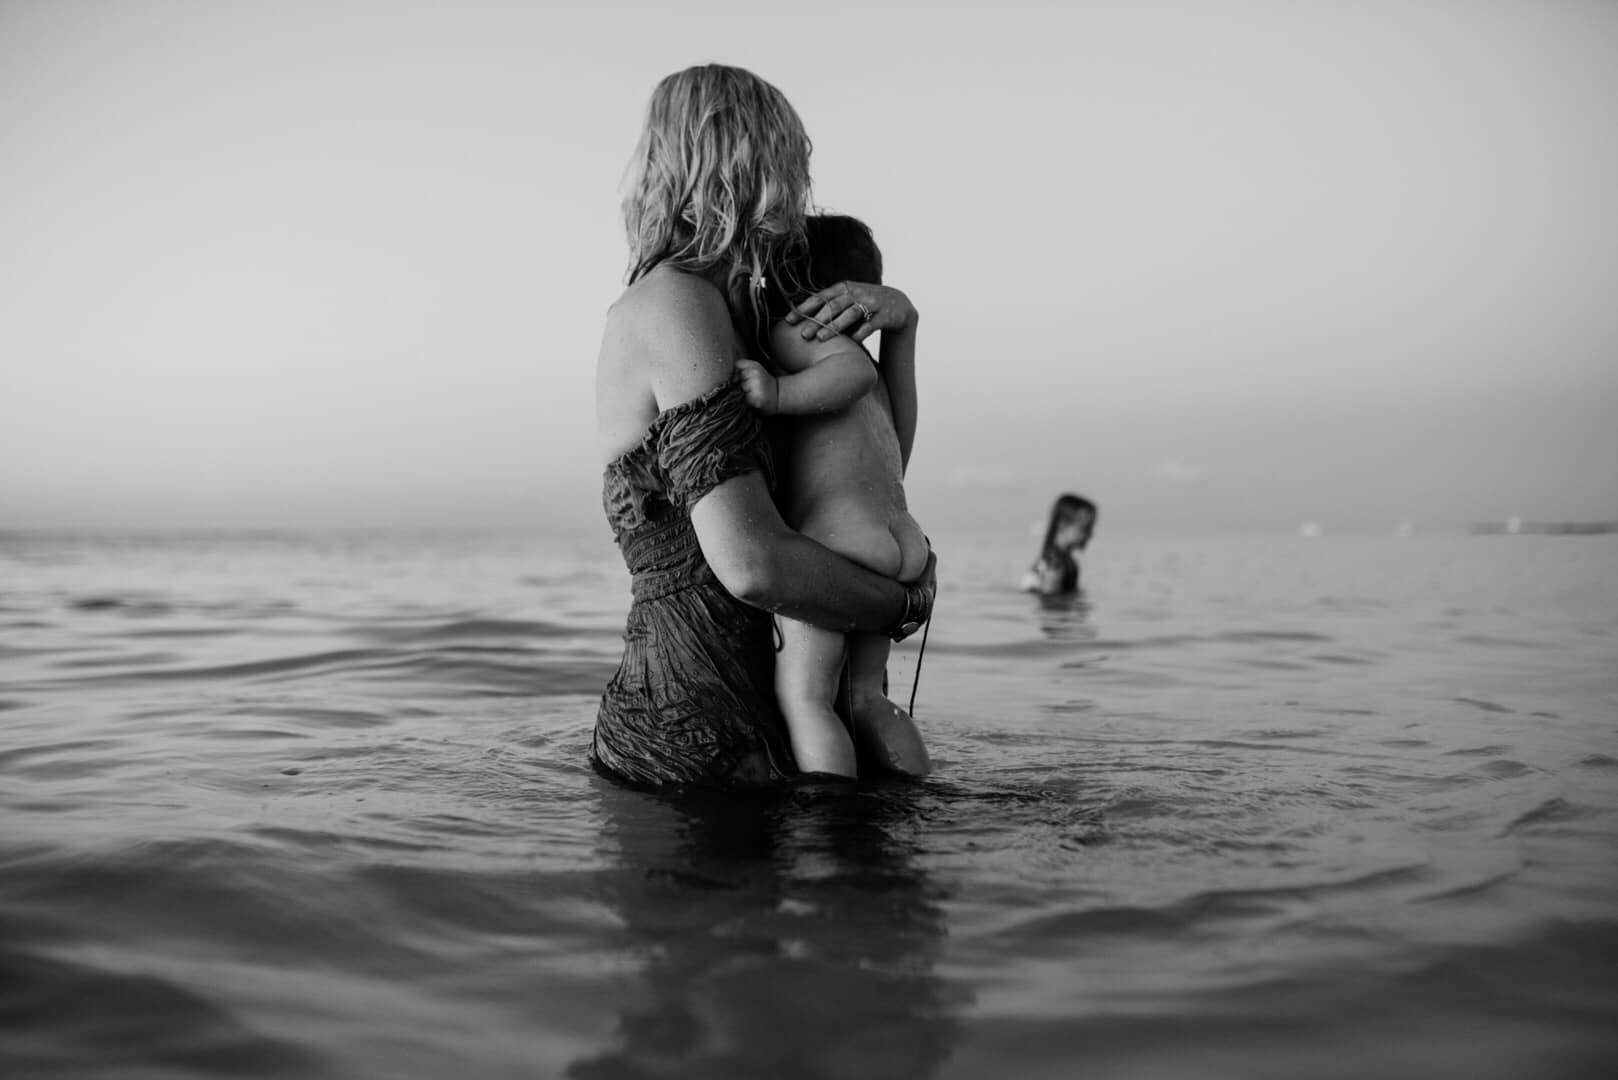 A woman is holding her baby and looking towards another child standing in the ocean.